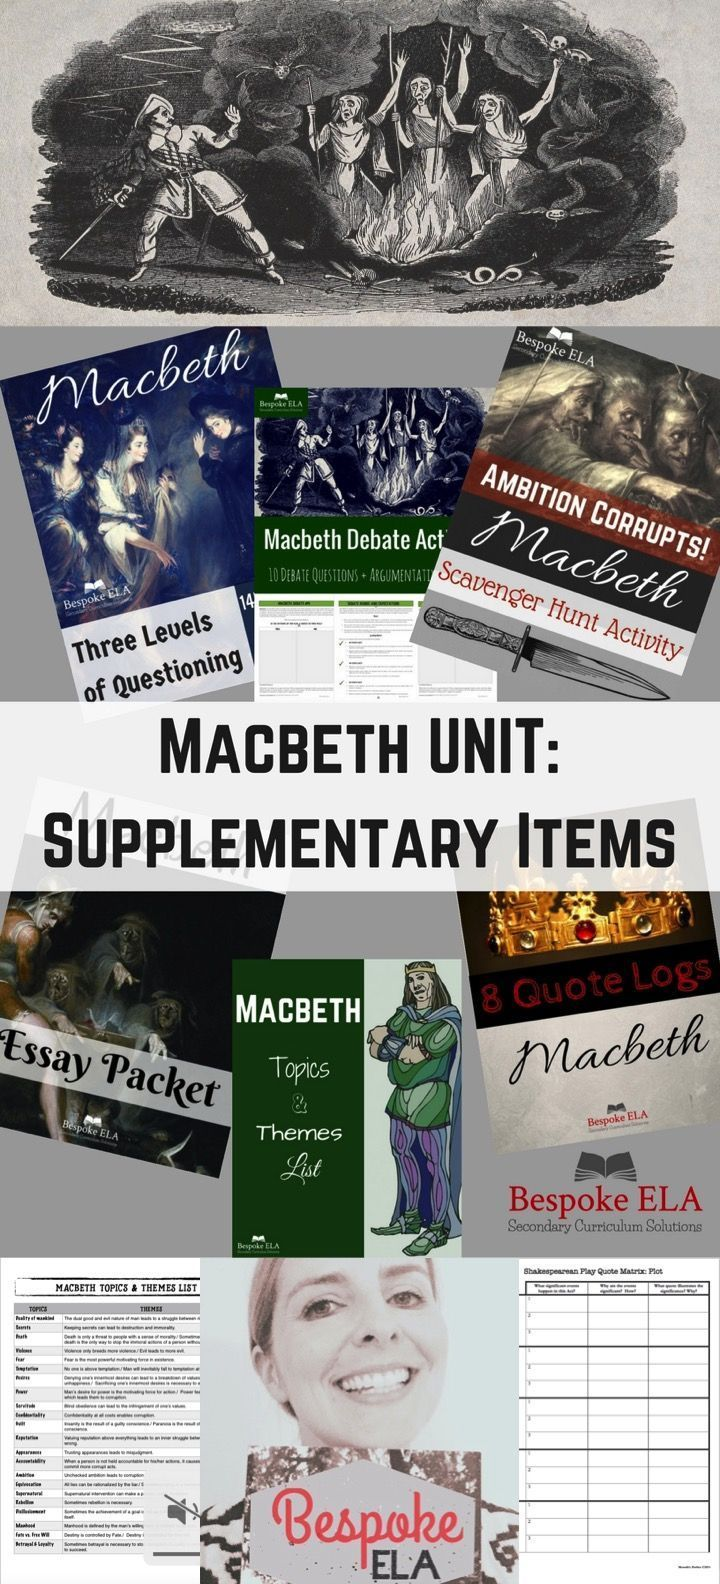 Persuasive Essay Thesis Examples This Unit By Bespoke Ela Contains Products To Supplement Any Macbeth Unit  This Bundle Includes  Aristotle And Shakespeare Excerpts  Book Report Helper also Compare And Contrast Essay Examples For High School Macbeth Bundle Supplementary Materials For Any Macbeth Unit  High  Thesis Statement In Essay